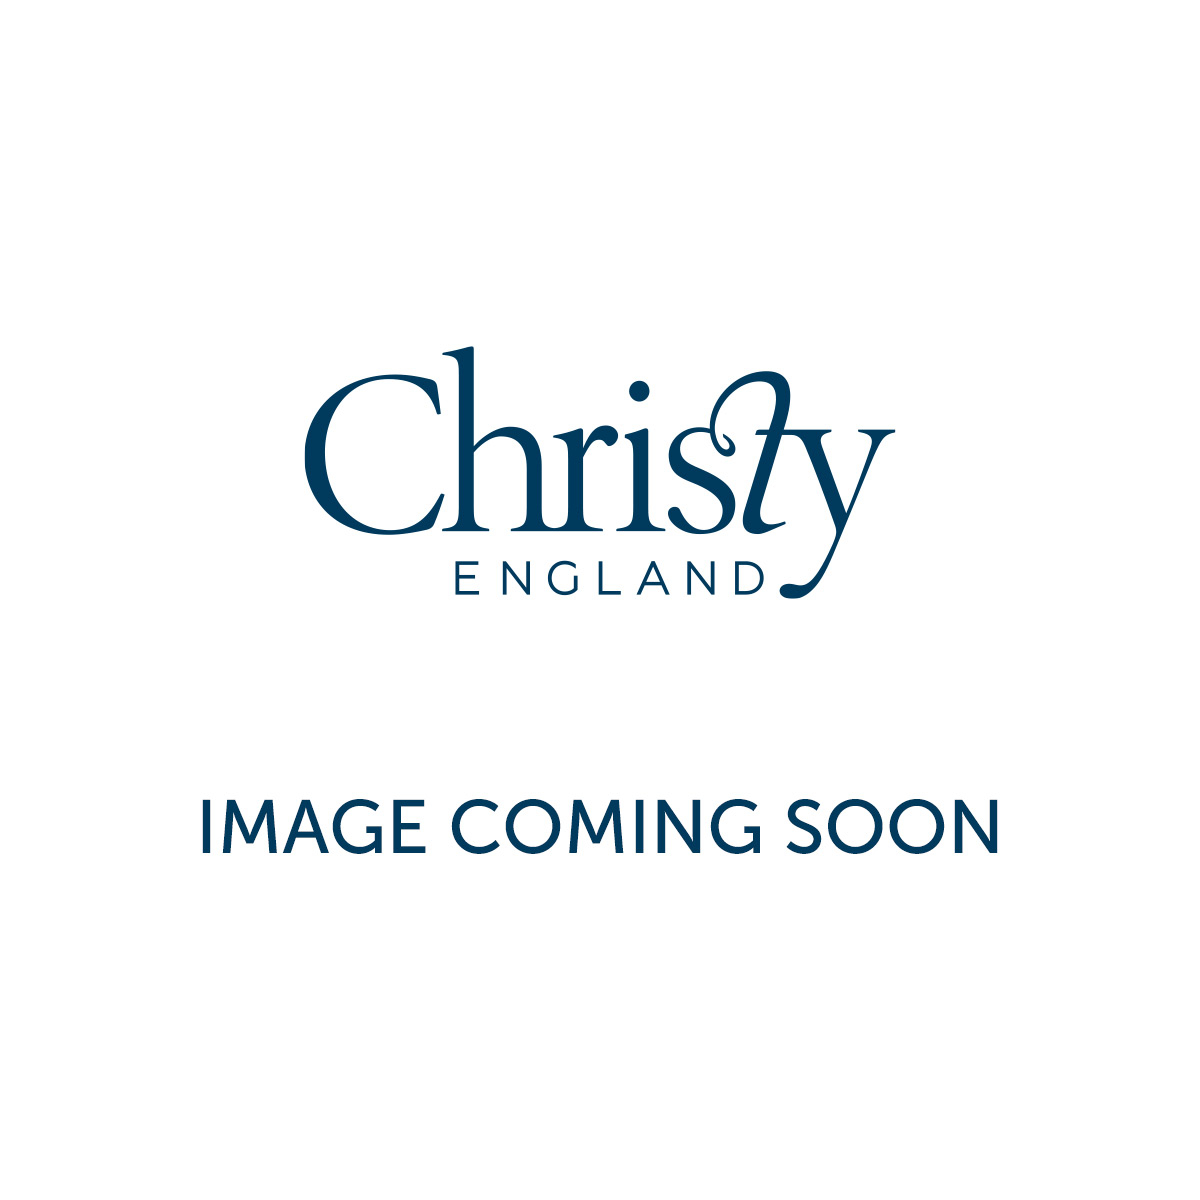 Bale of Christy Mode Towels in the shade White/Gold